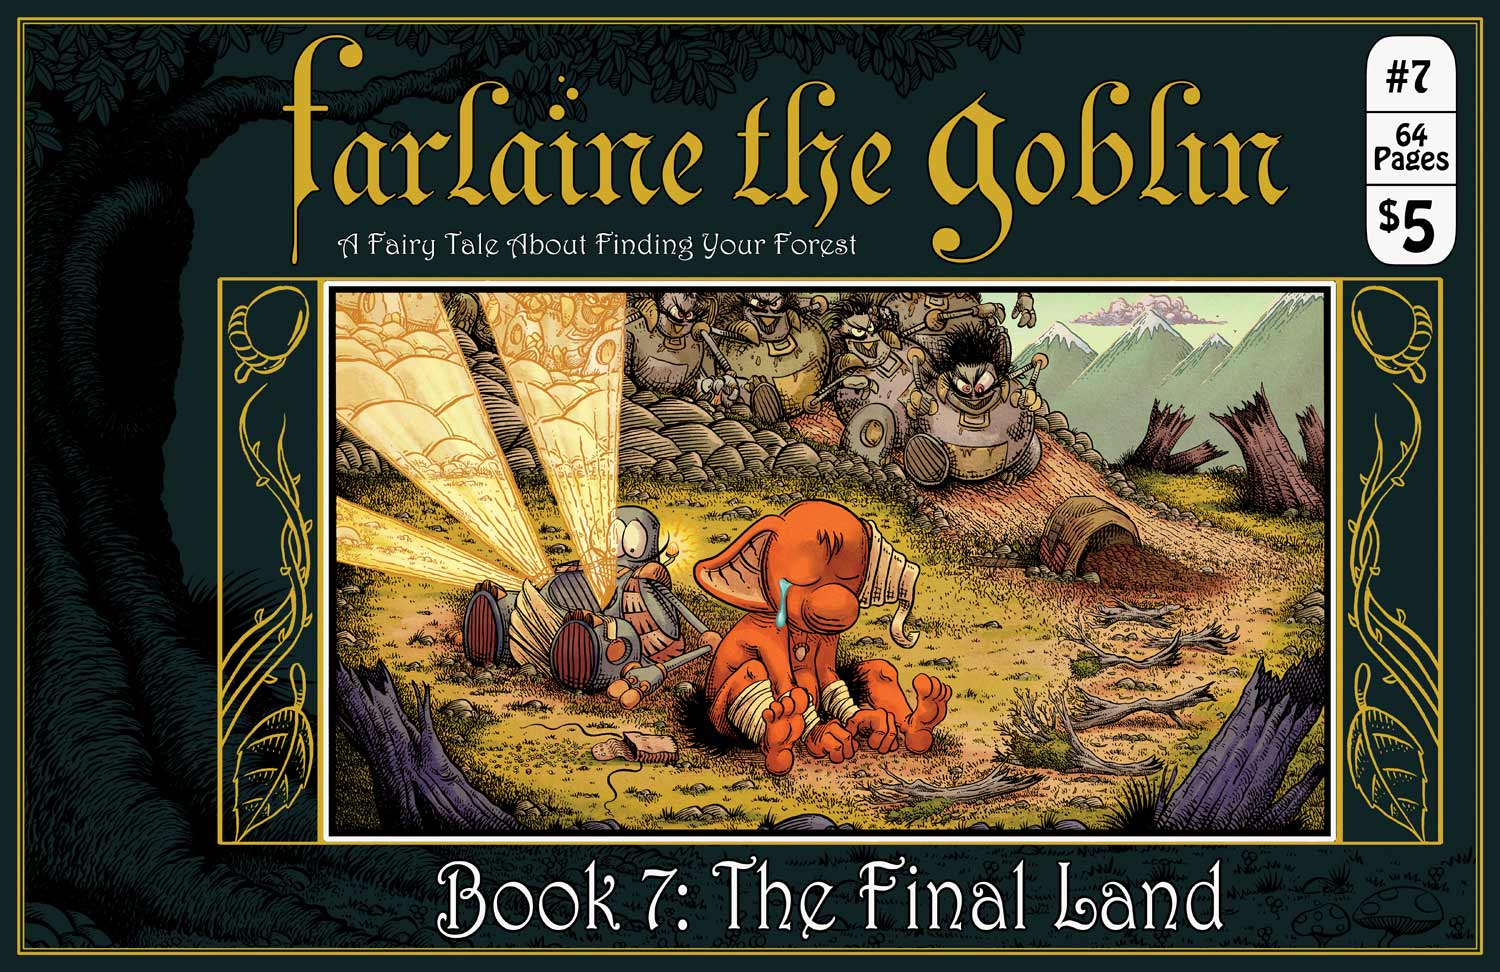 Farlaine the Goblin ~ A Fairy Tale About Finding Your Forest